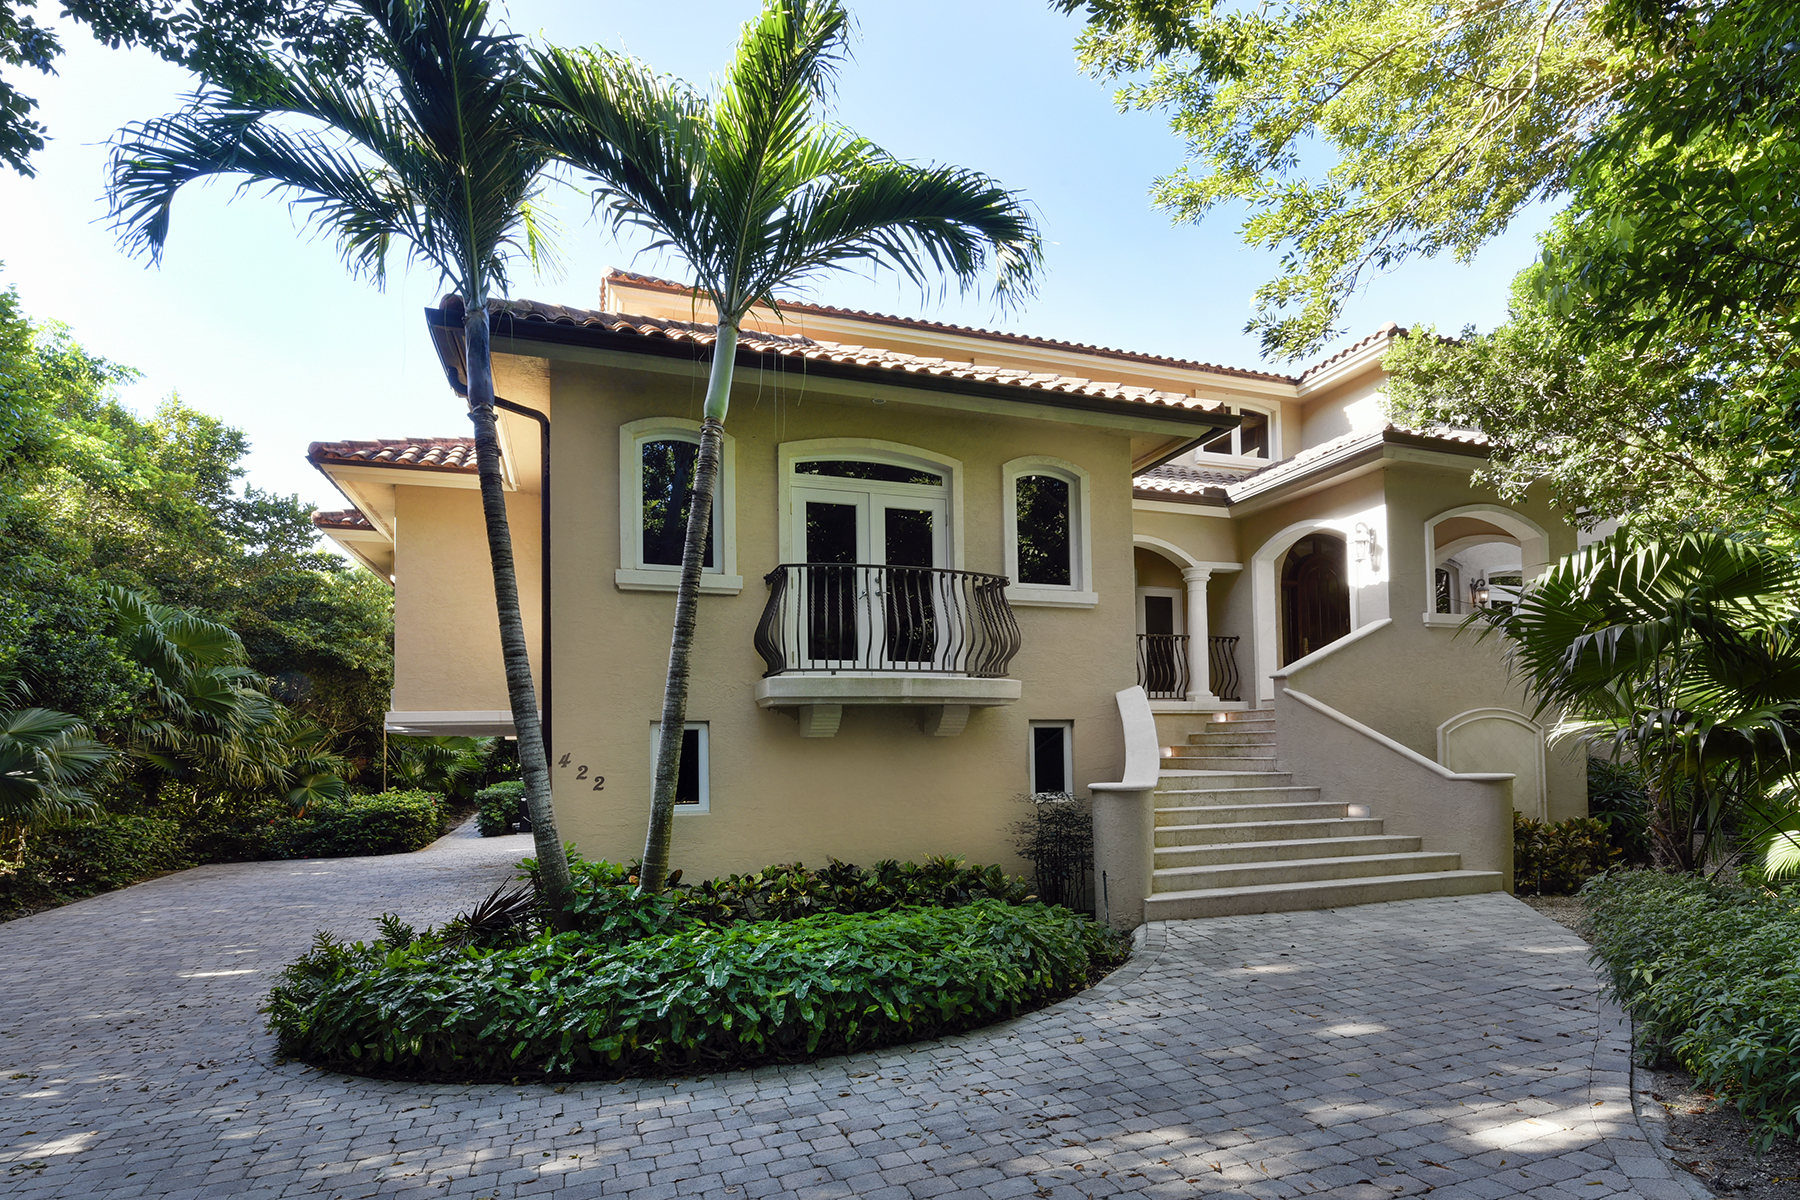 Casa Unifamiliar por un Venta en Elegant Lakefront Home at Ocean Reef 422 South Harbor Drive Key Largo, Florida 33037 Estados Unidos